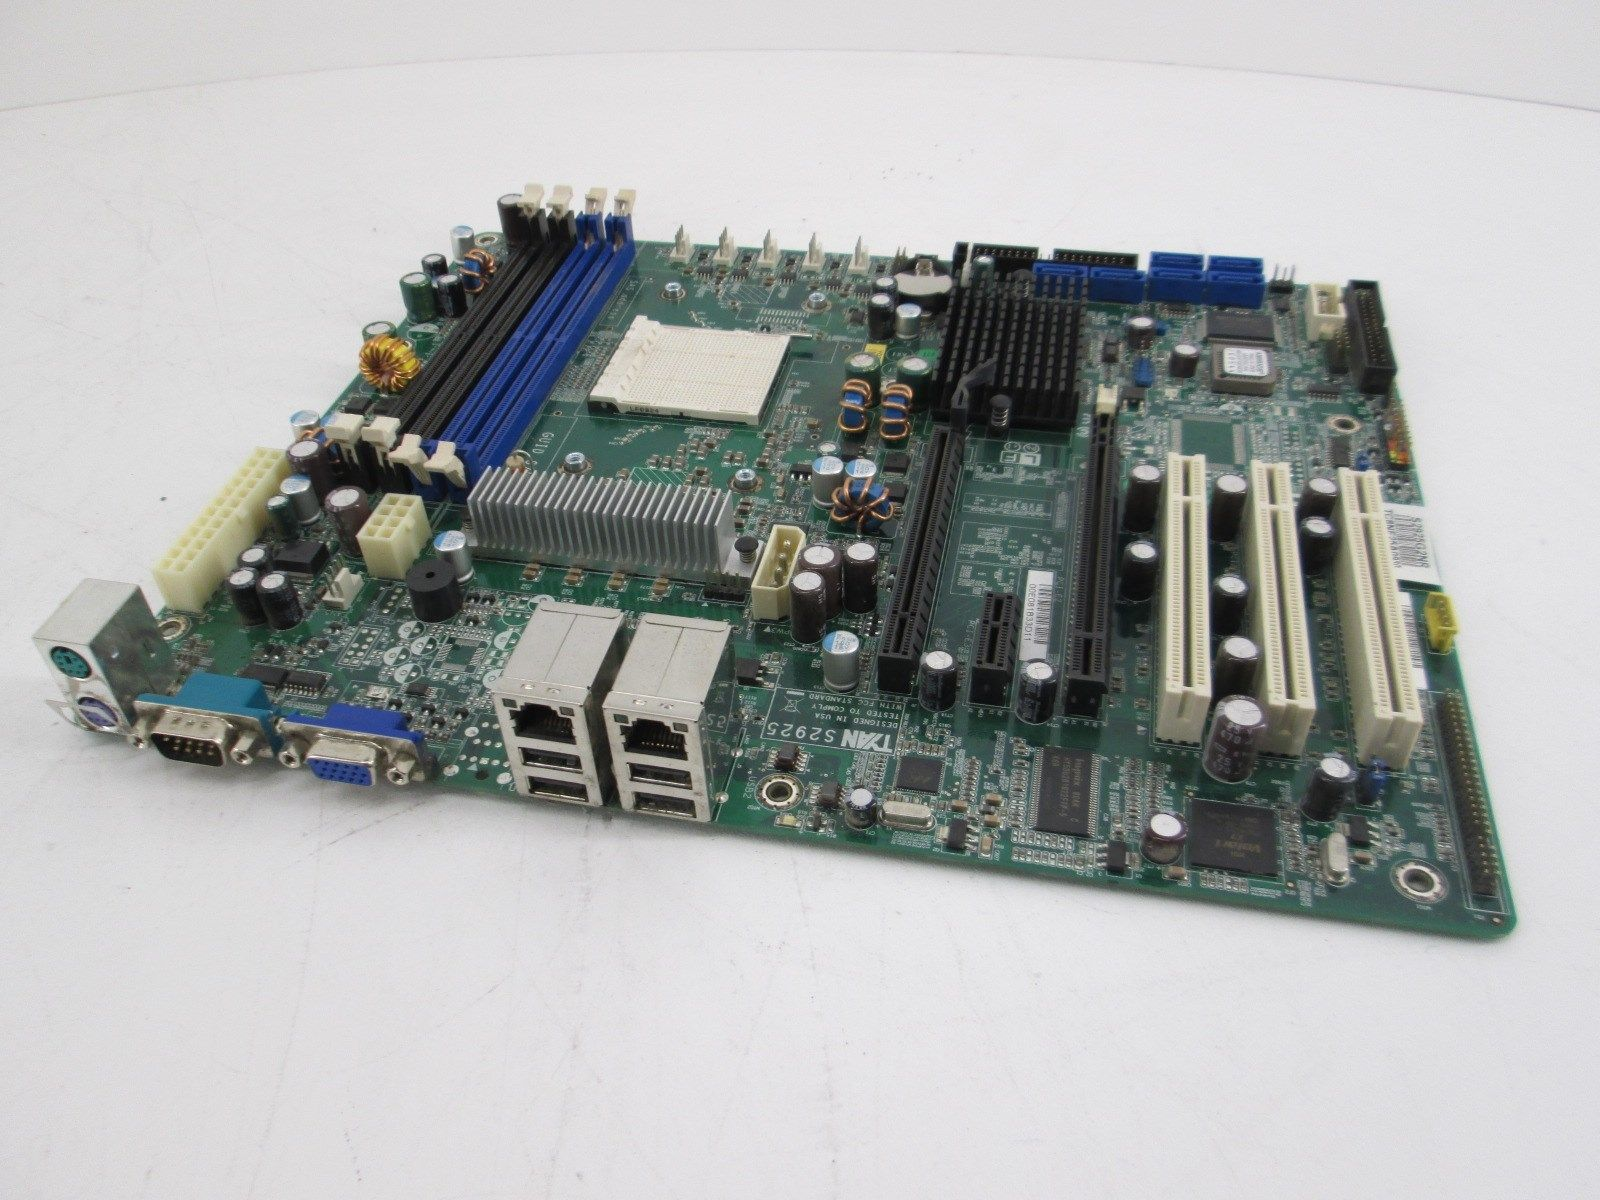 TYAN TOMCAT N3400B (S2925) S2925G2NR NForce Pro 3400 Socket-AM2 SATA Raid, Video, Lan ATX Motherboard